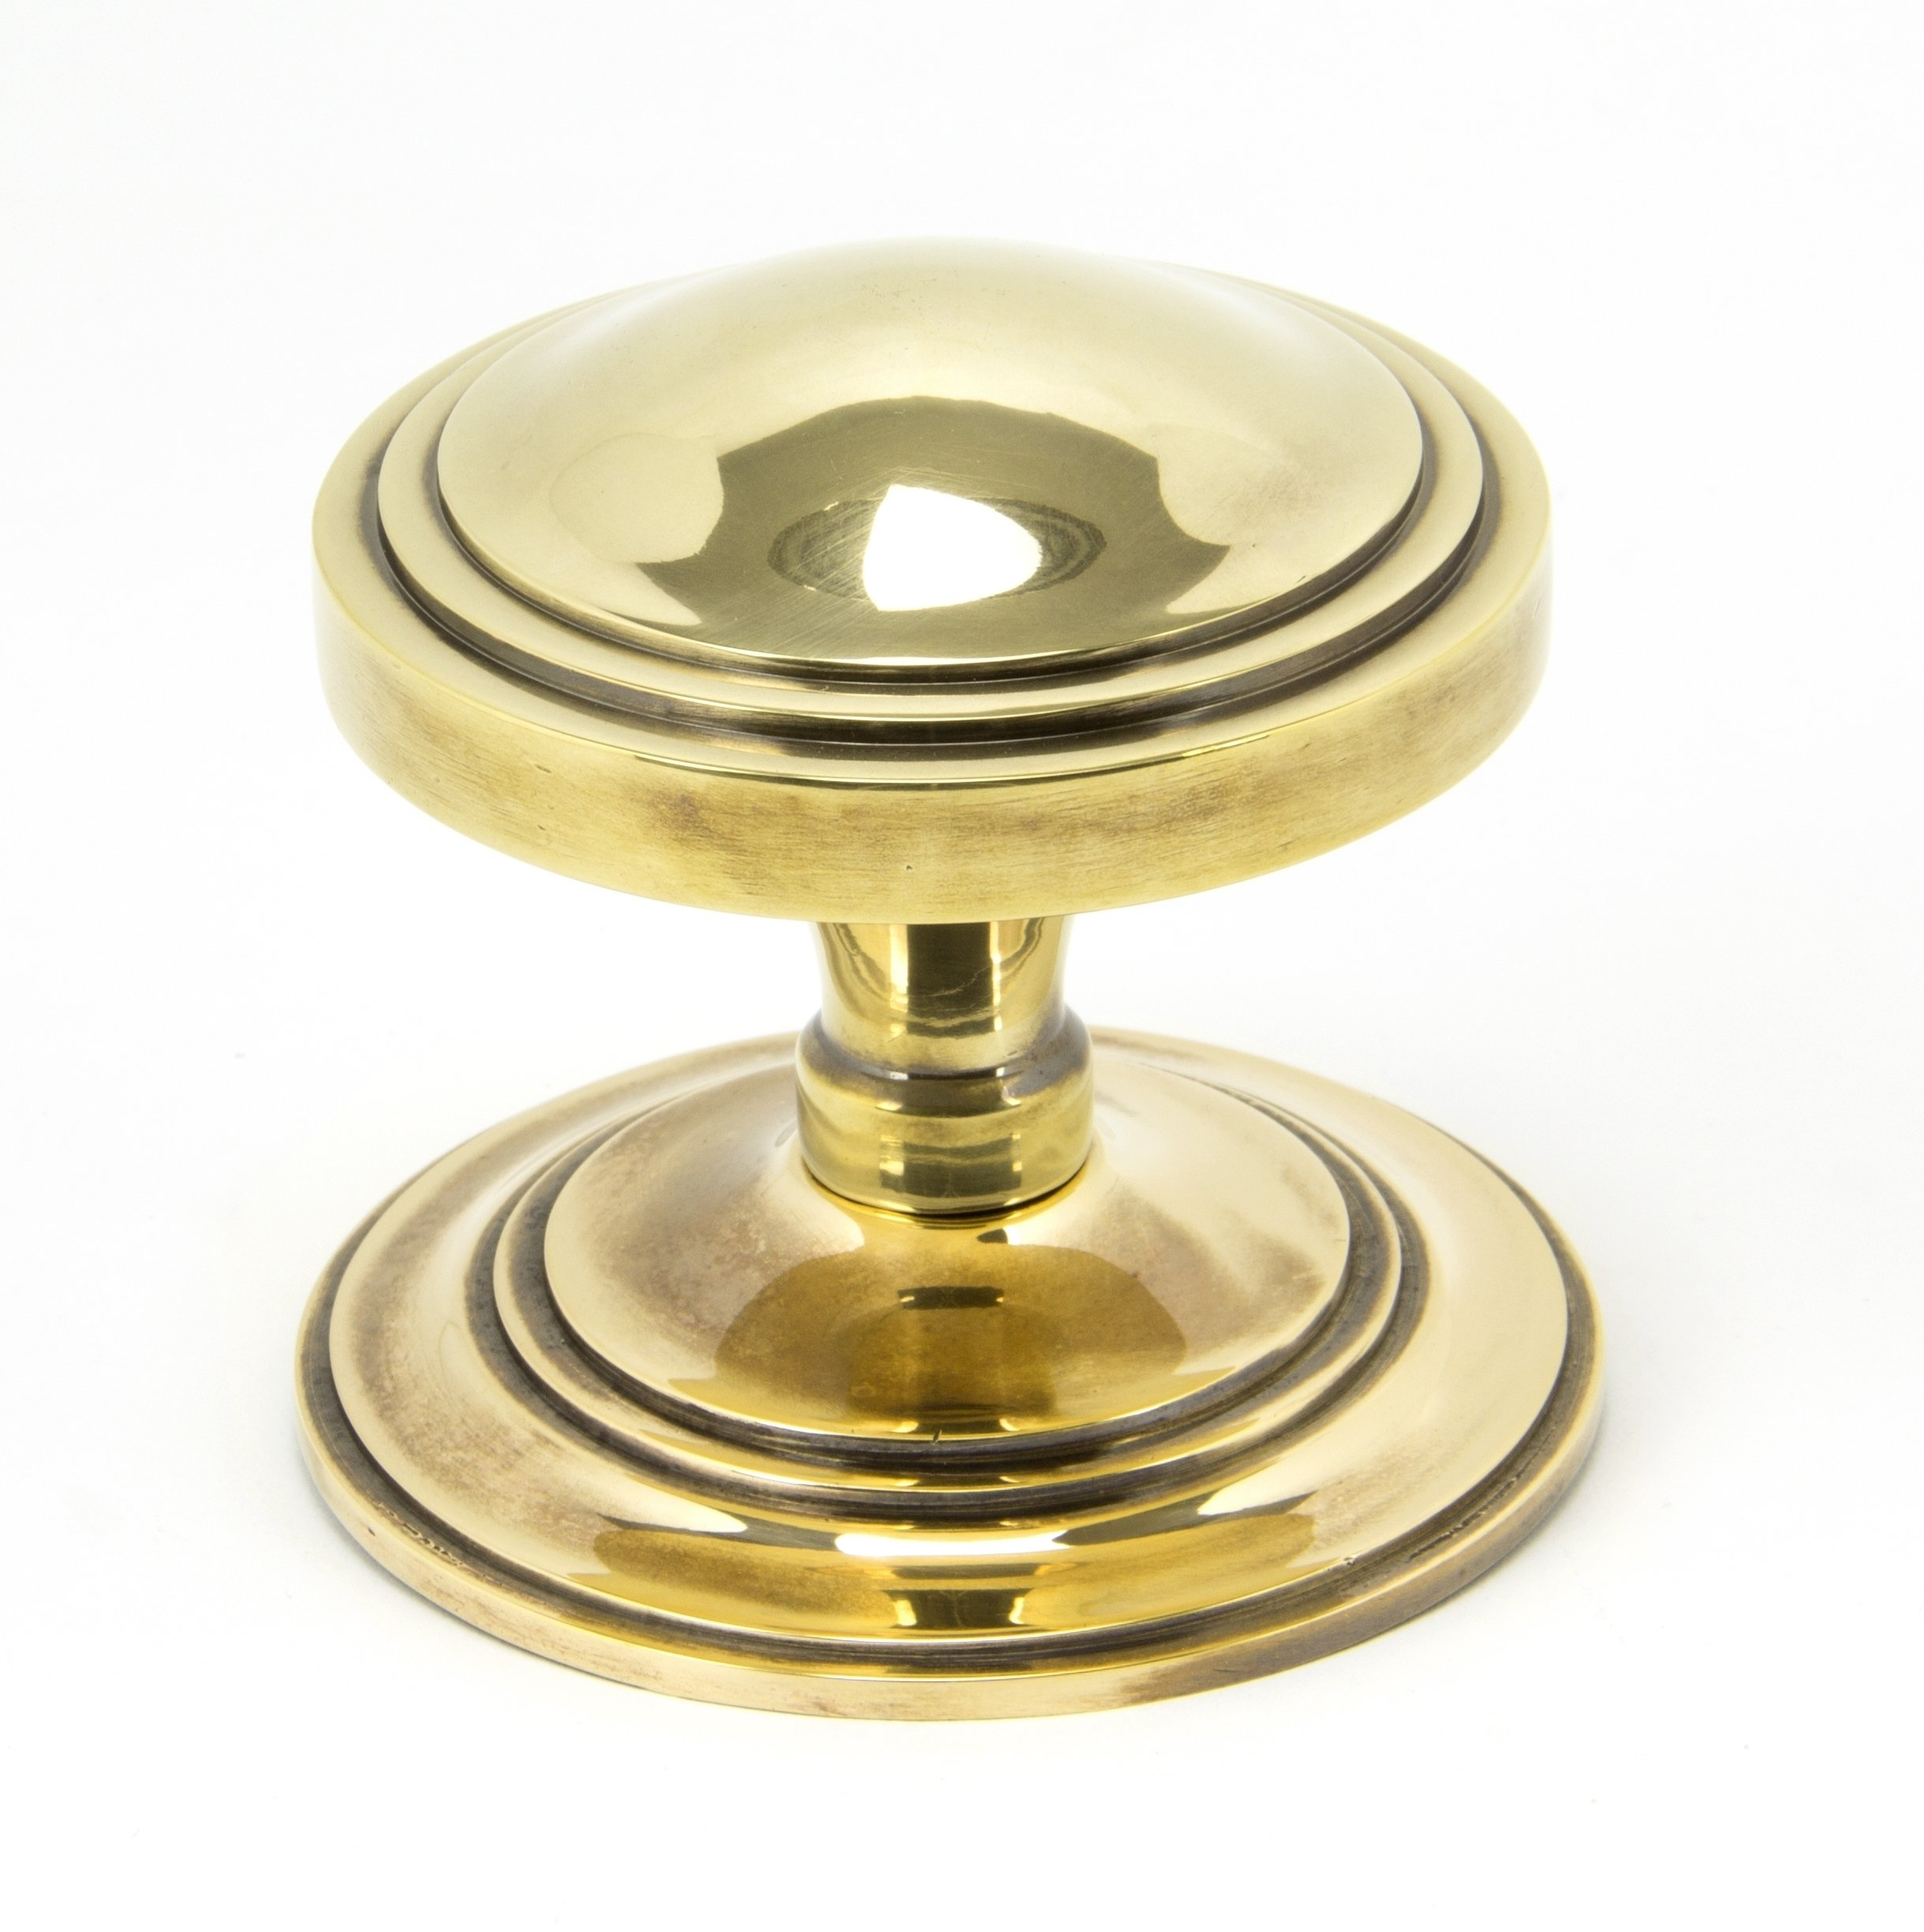 Aged Brass Art Deco Centre Door Knob